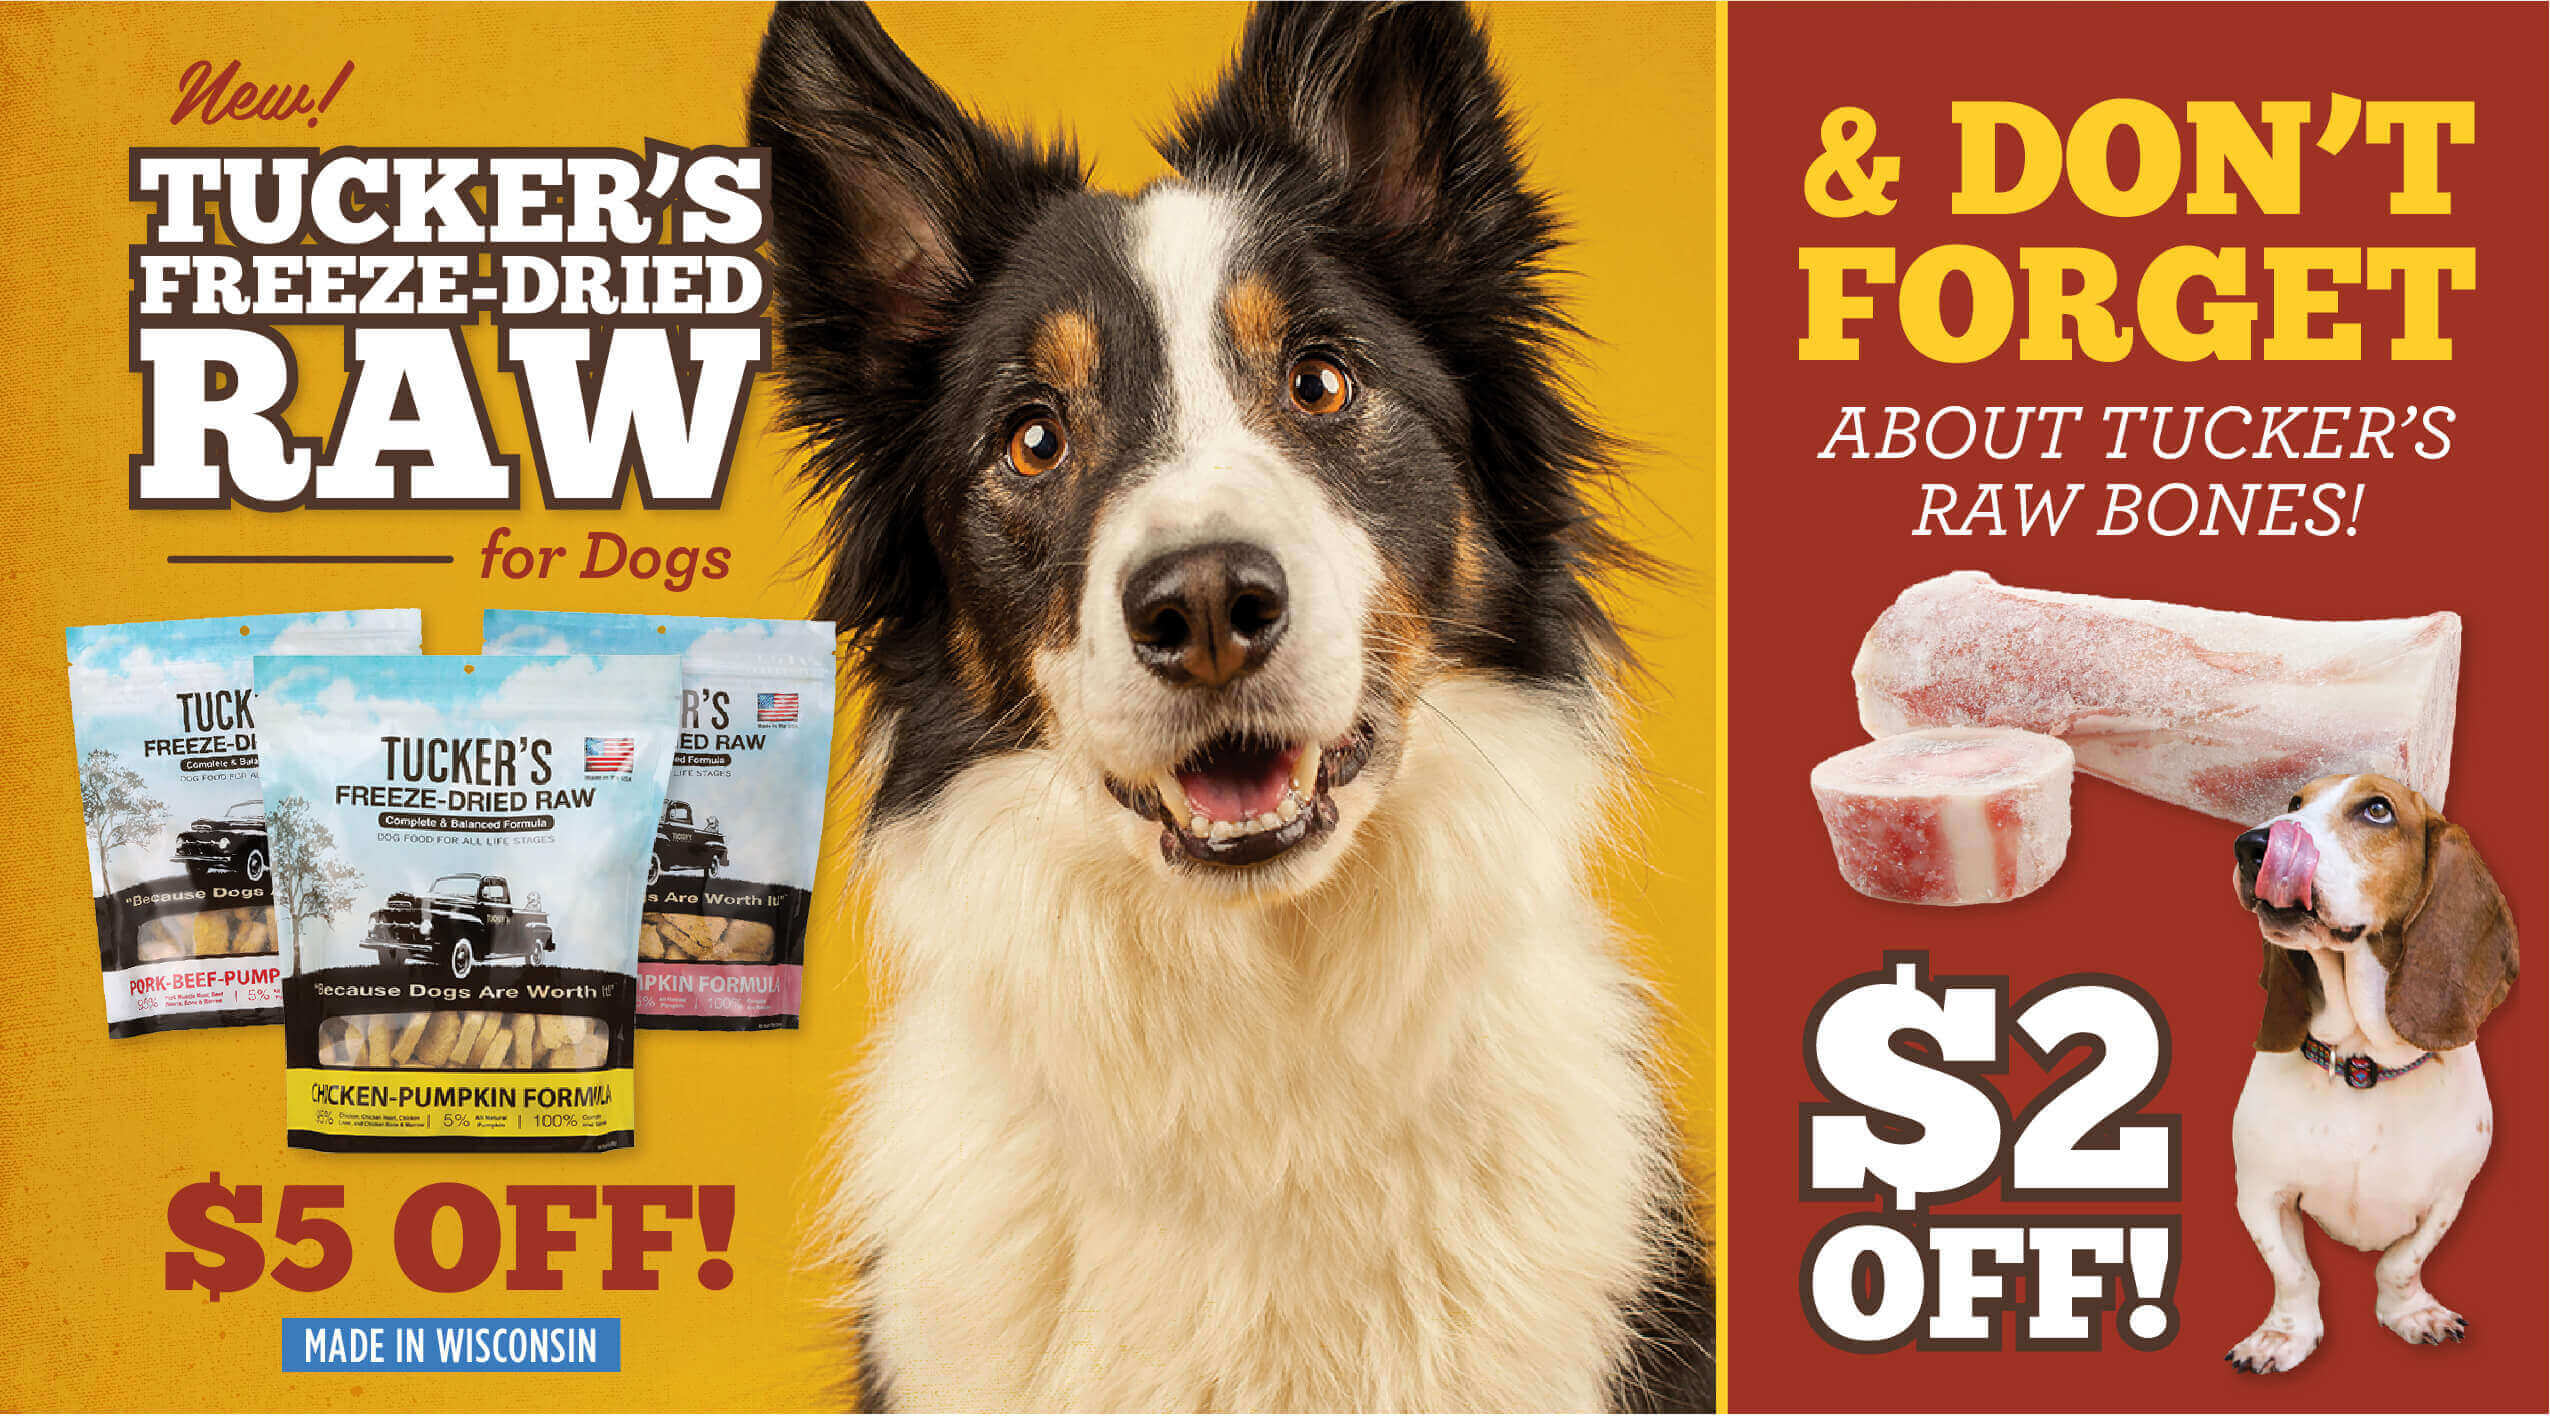 Big Fluffy Dog - Tucker's Freeze-dried Raw 5 dollars off - Made in Wisconsin